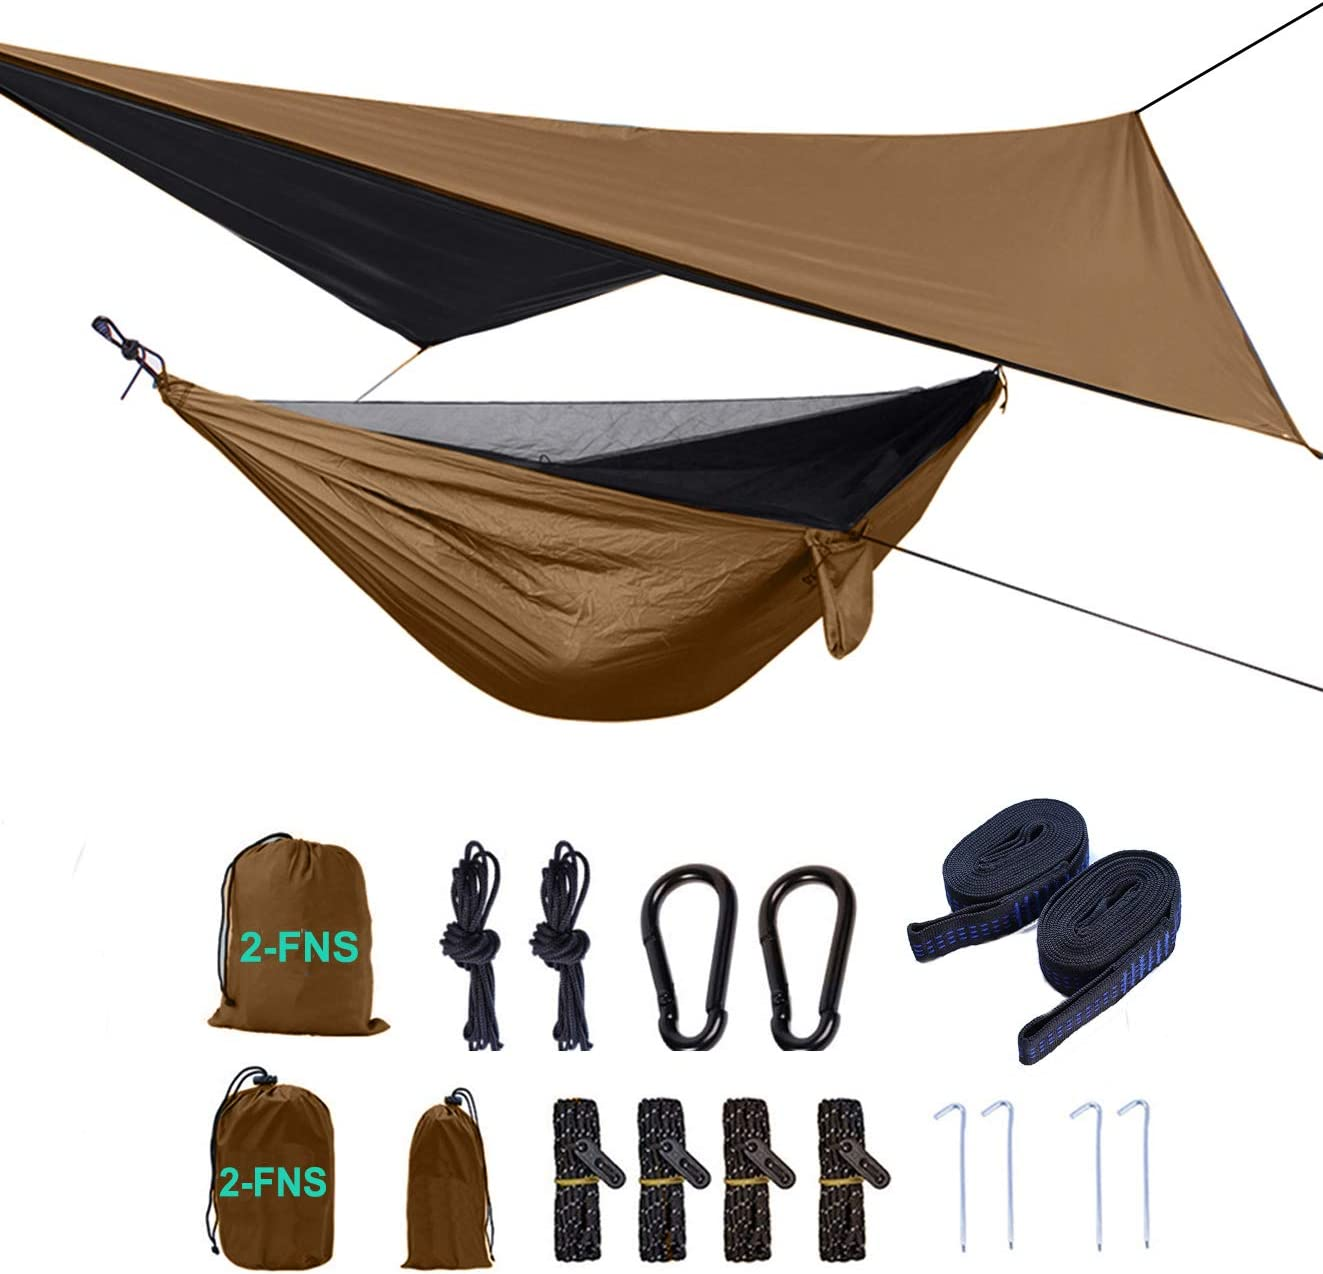 2-FNS Camping Hammock with Mosquito Net and Rain Fly, Includes Tree Straps, and Compression Sack Lightweight Portable Single Hammock Perfect for Backpacking Travel Outdoor Adventures and Camping Trip